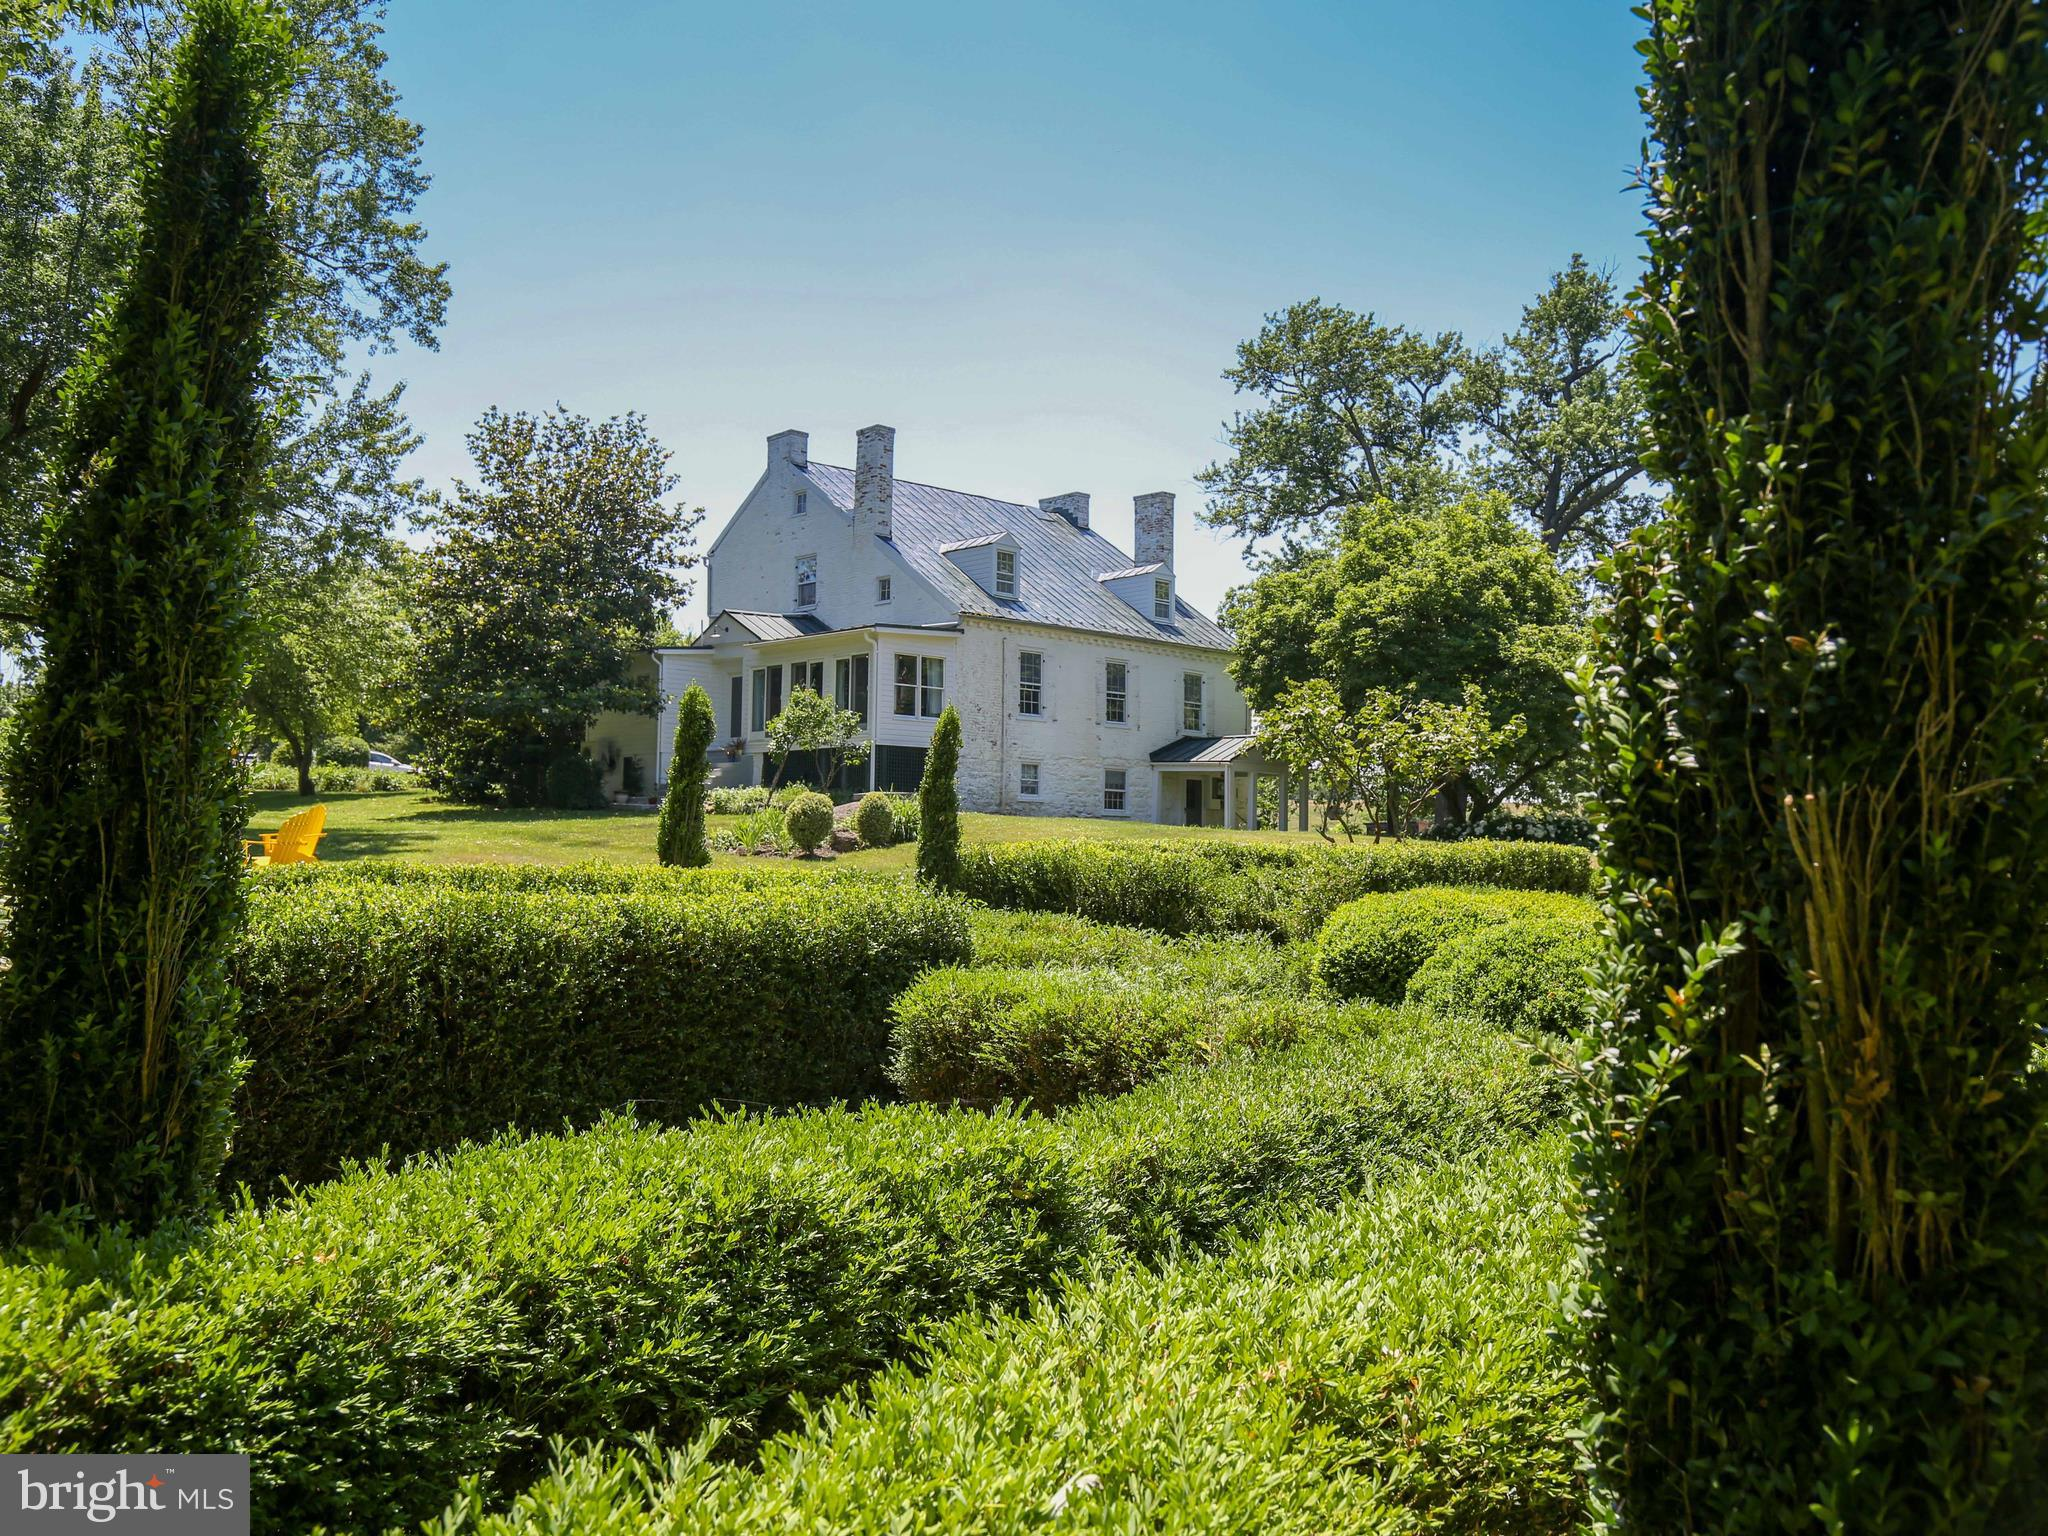 Welcome to historic Rock Spring, a gracious brick home built in 1790-1810 with formal gardens and fi